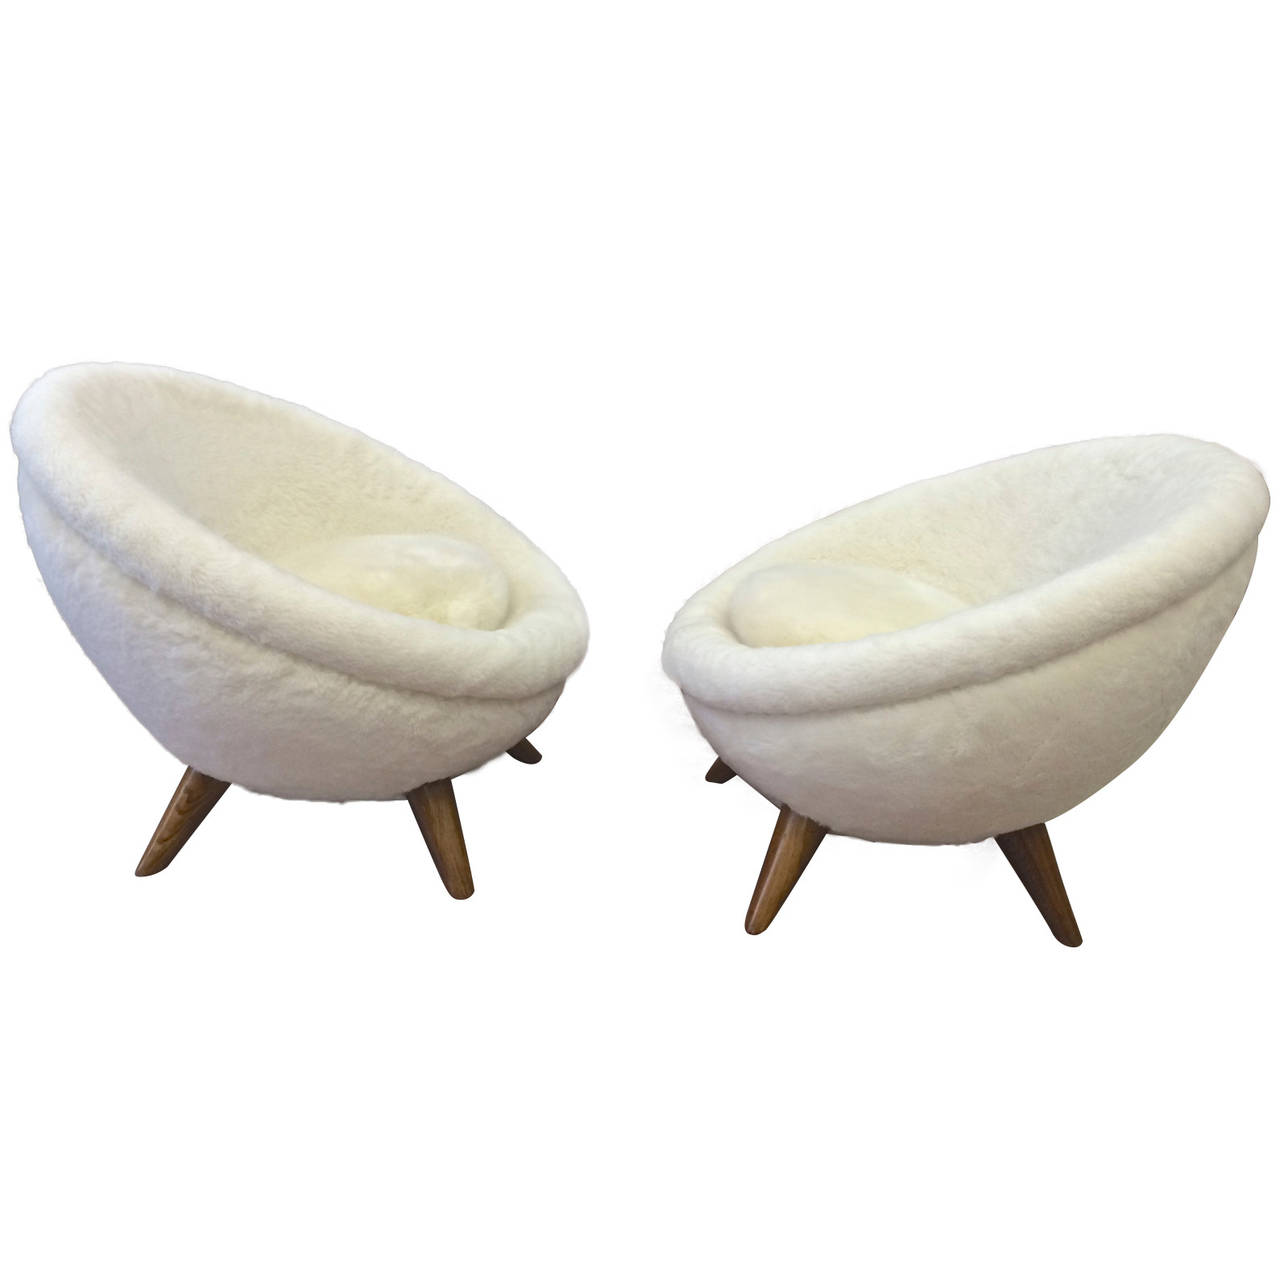 pair of chairs by jean royere